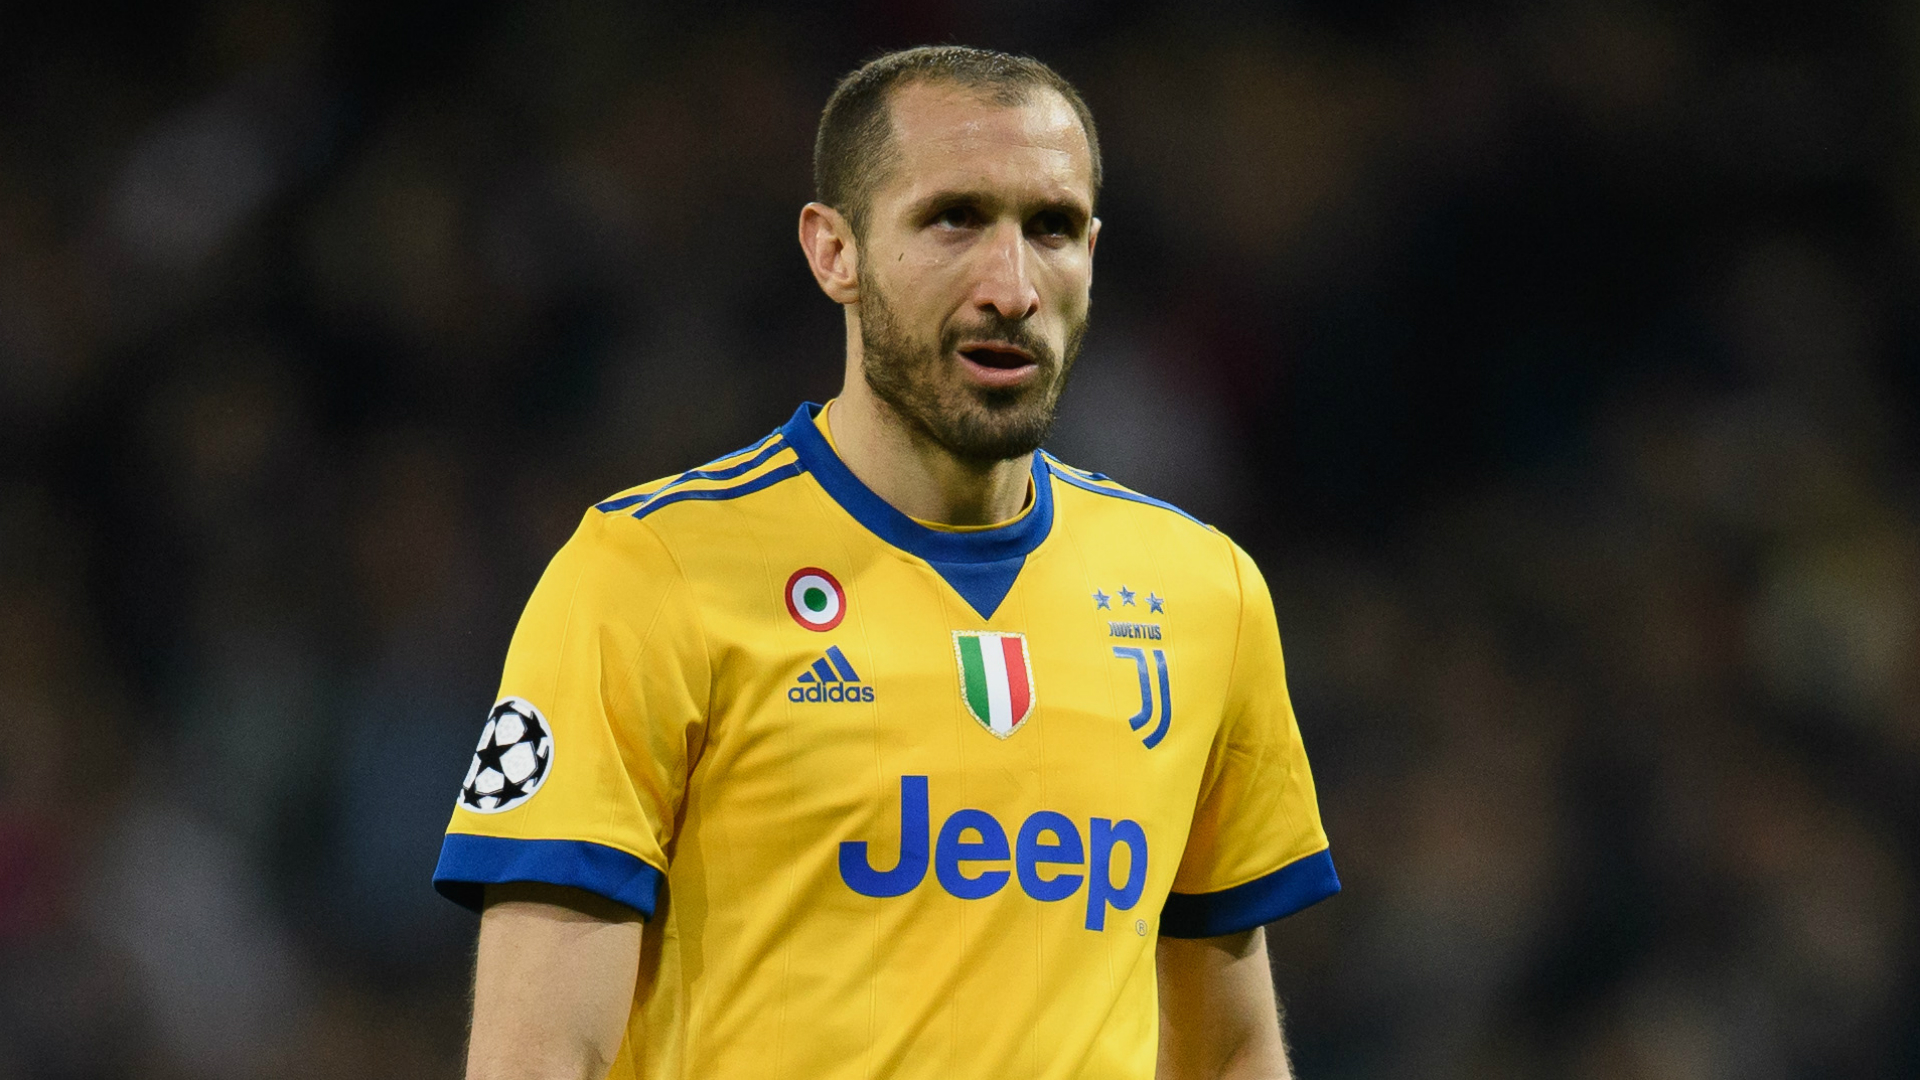 Juventus defender Chiellini set for two weeks out